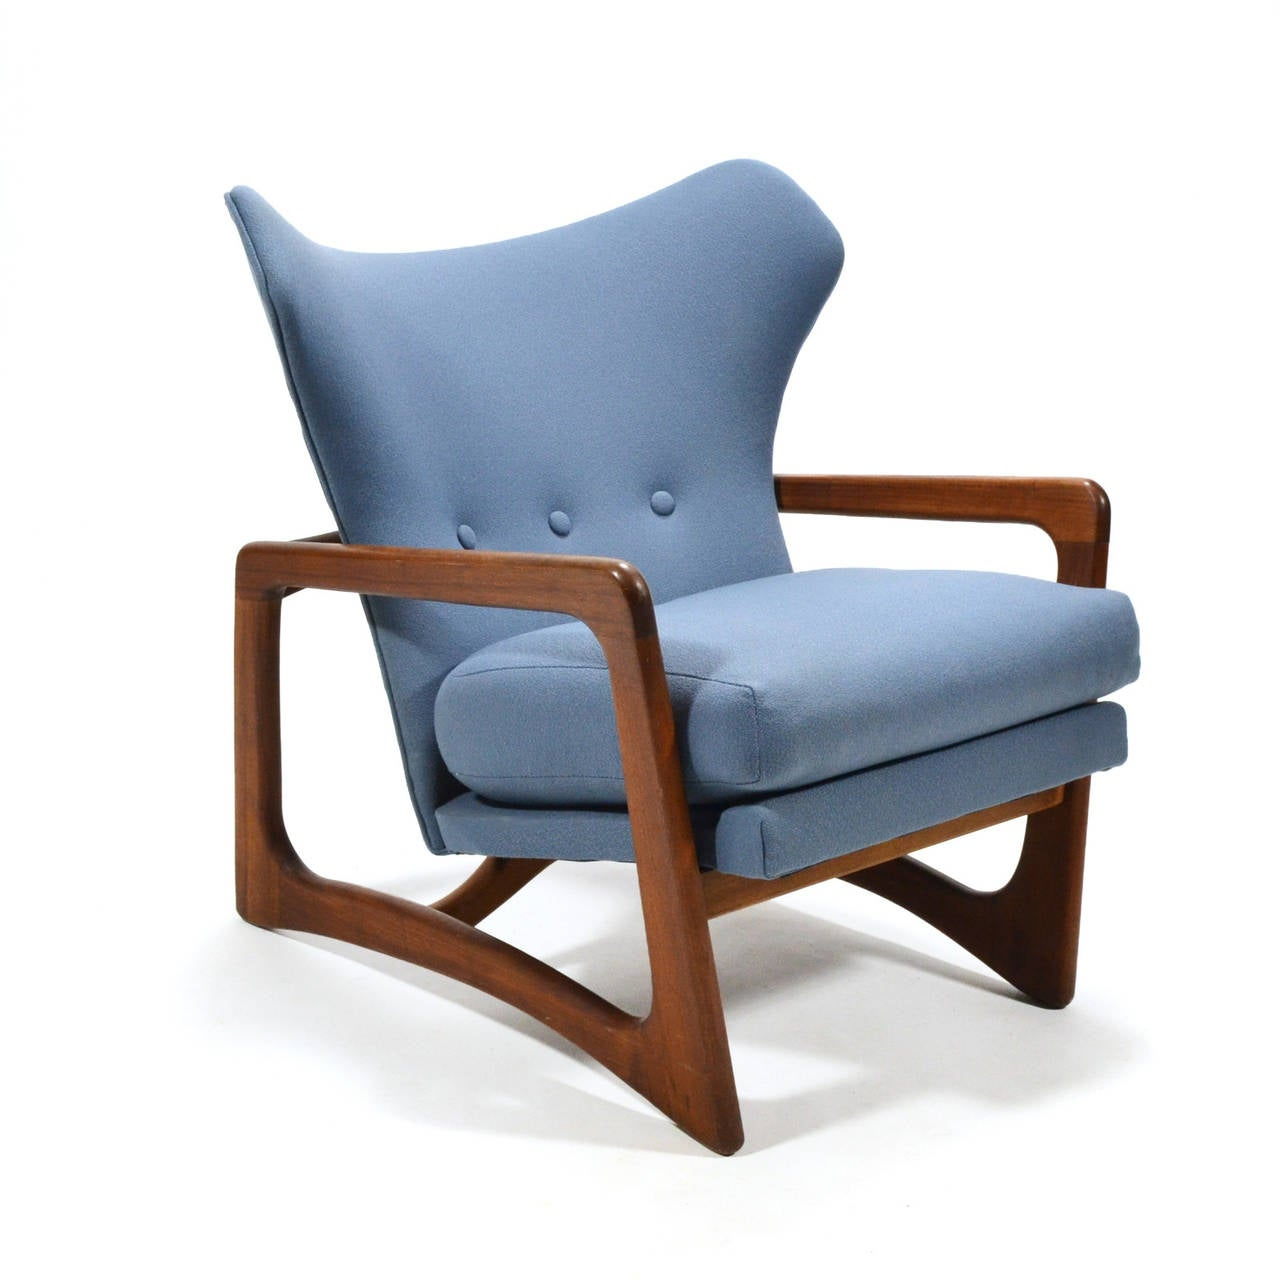 adrian pearsall chair designs circle chairs walmart wingback lounge by craft associates